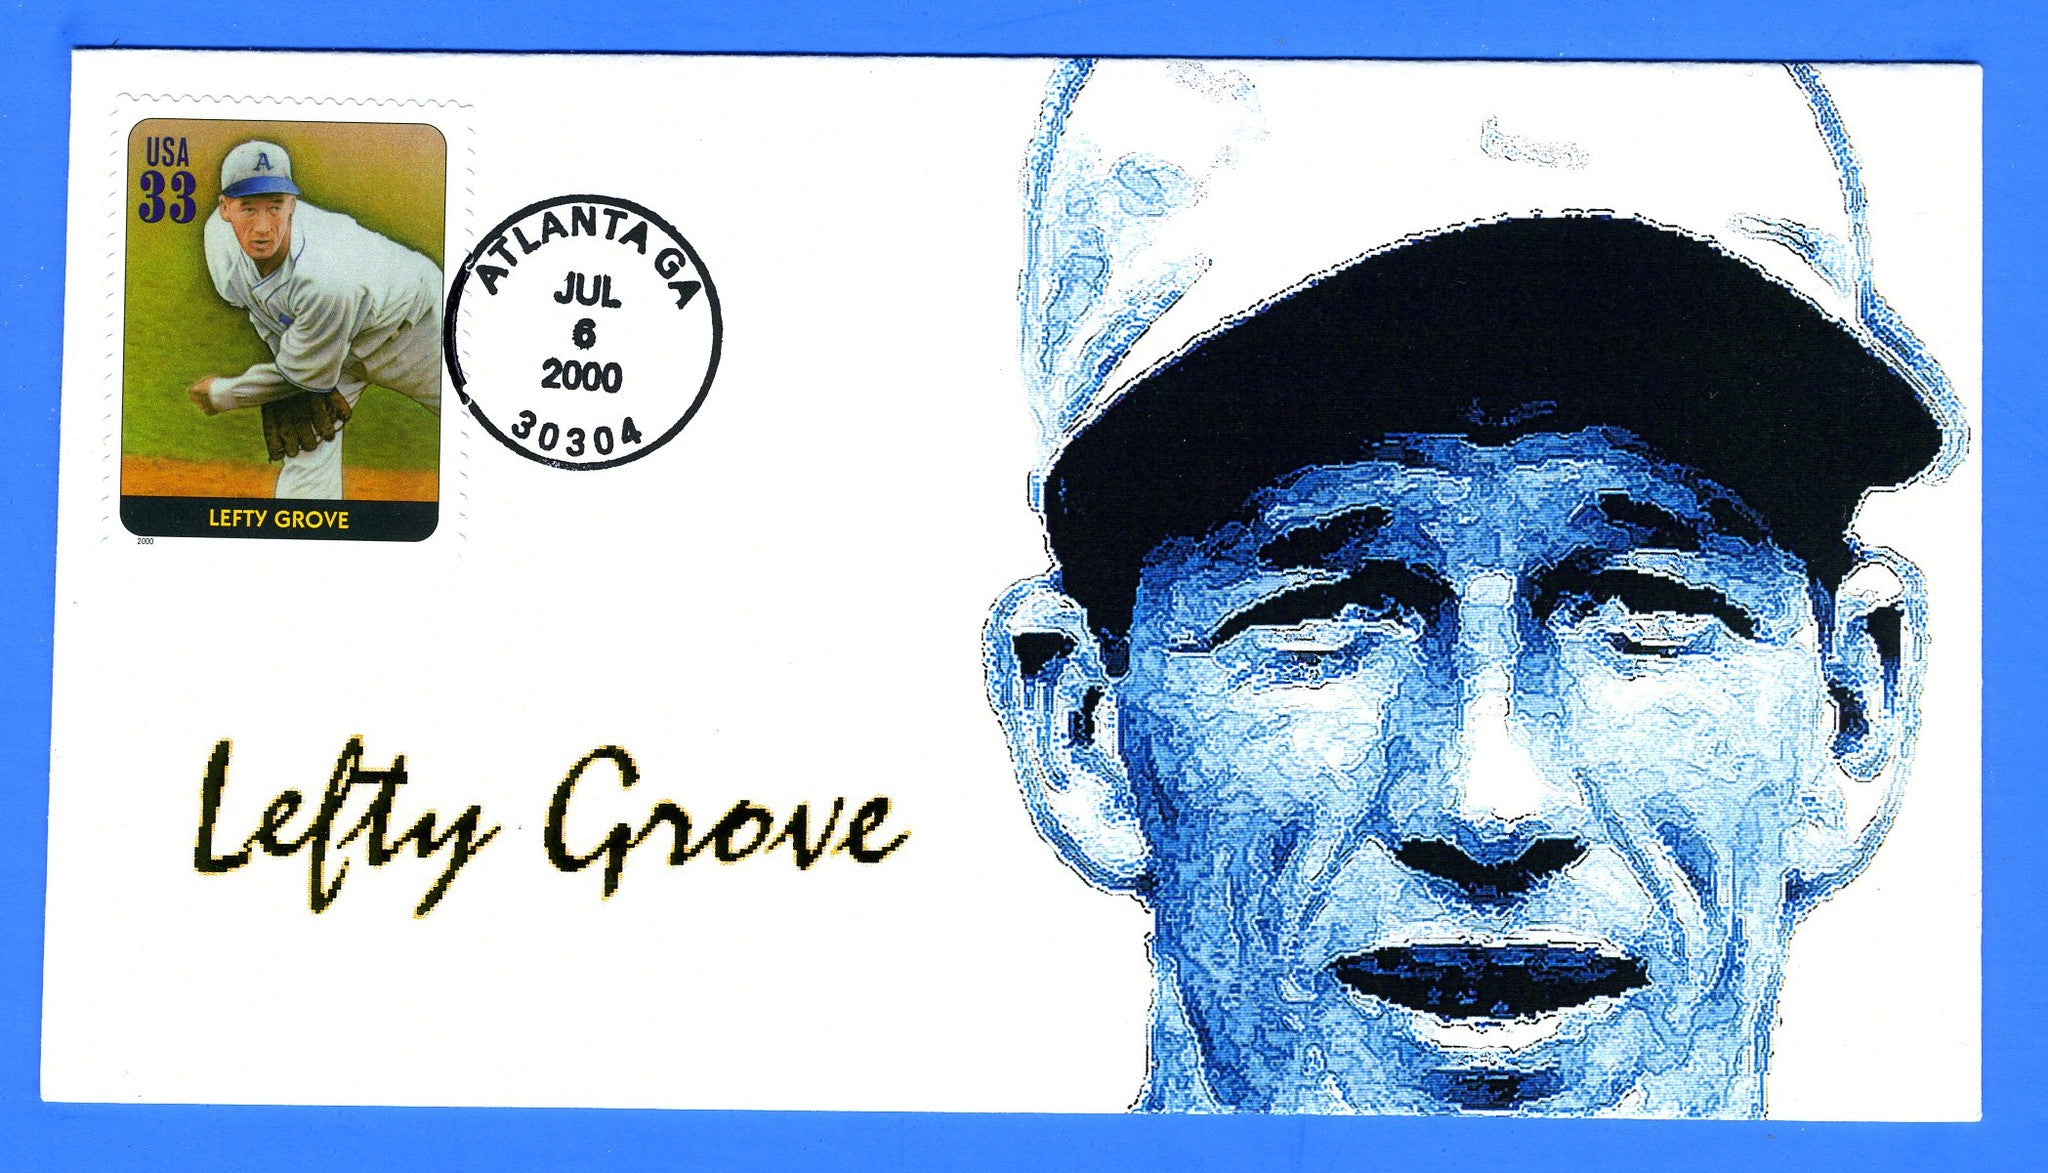 Scott 3408k 33c Lefty Grove, Legends of Baseball First Day Cover by Great Southern Cover Co